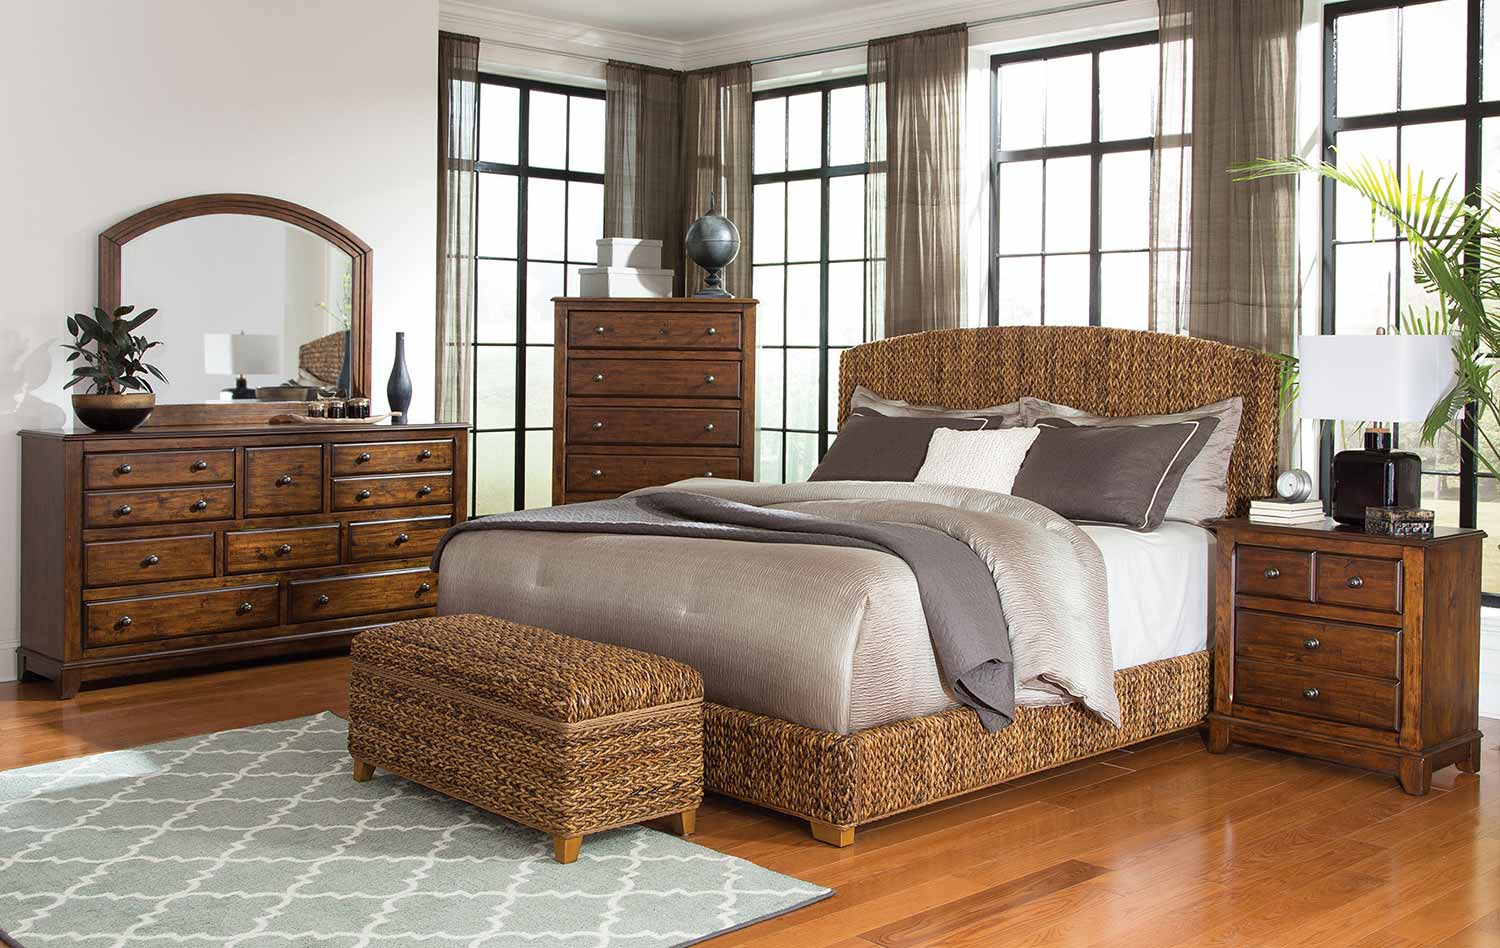 Coaster Laughton Abaca Panel Bedroom Set Natural Cocoa Brown BEDROOM